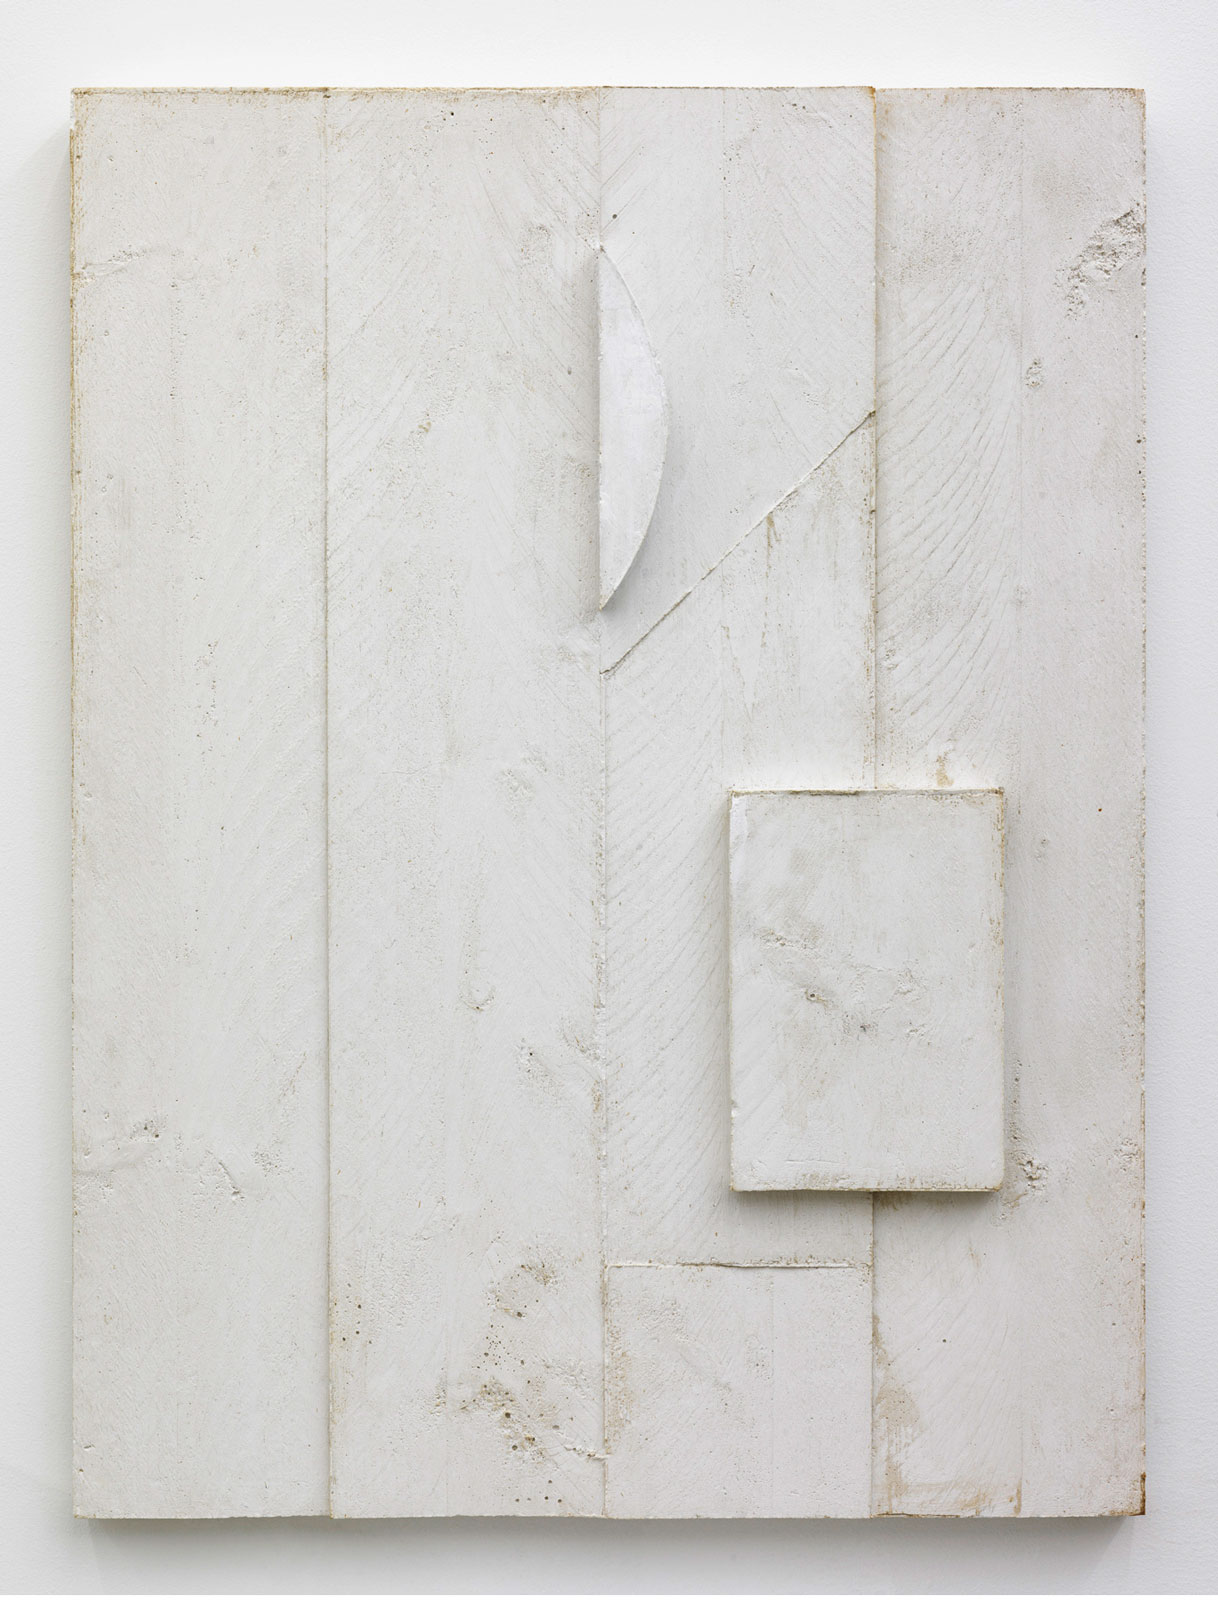 Untitled, 2014<br/>plaster<br/>60 x 80 x 5 cm